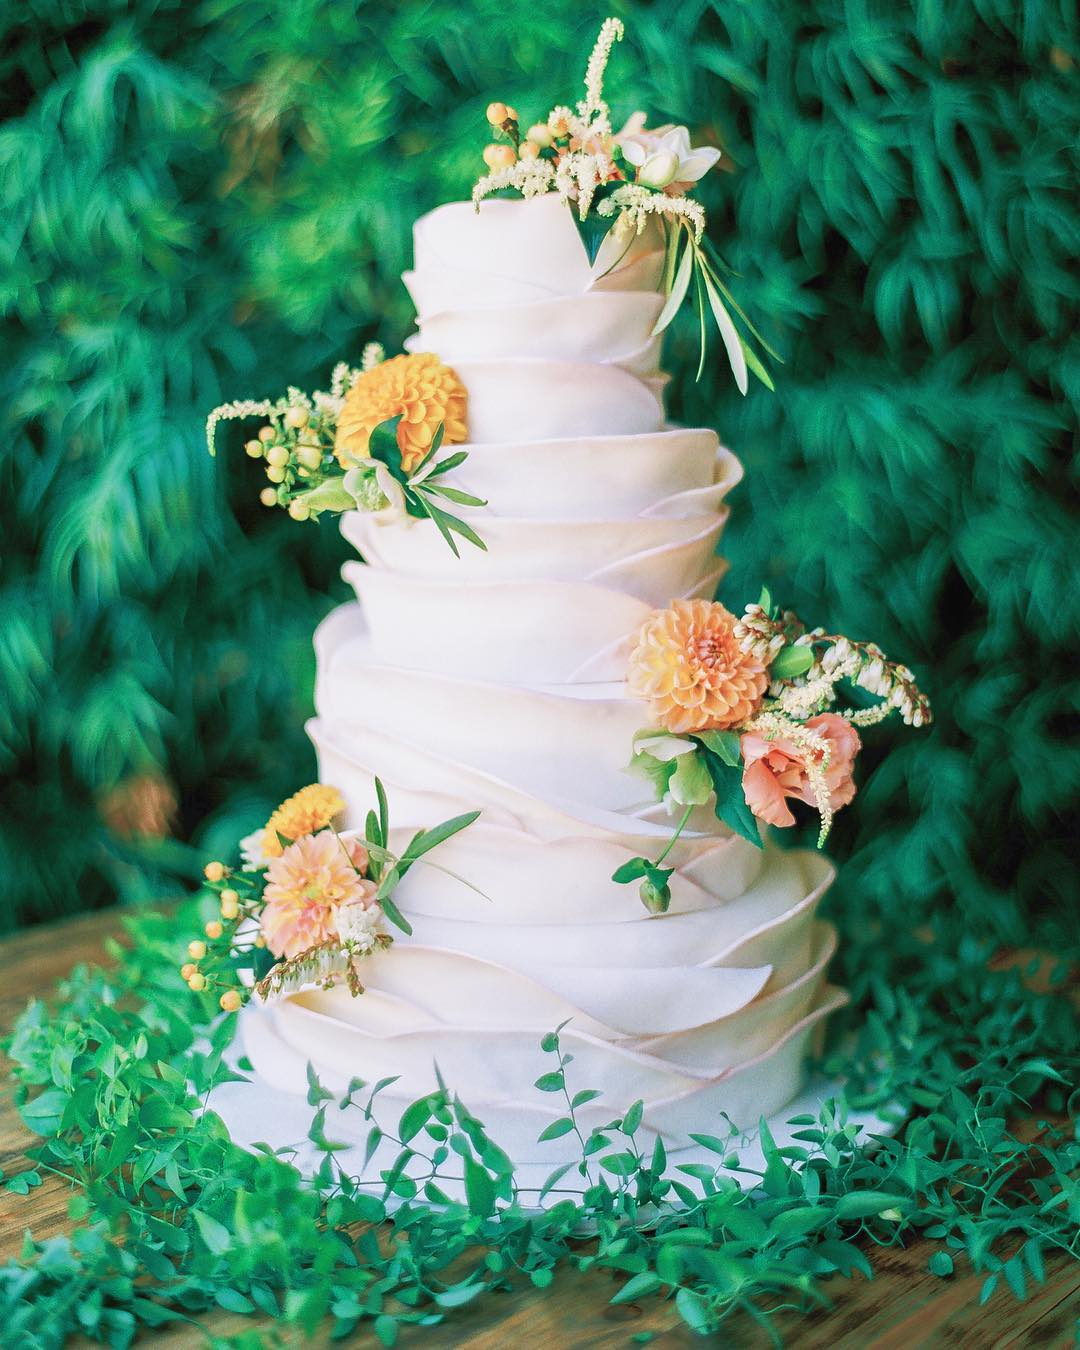 From Ruffles To Succulents Florals And More Here Are Some Of Our Favorite Instagram Posts For A Little Wedding Cake Inspo